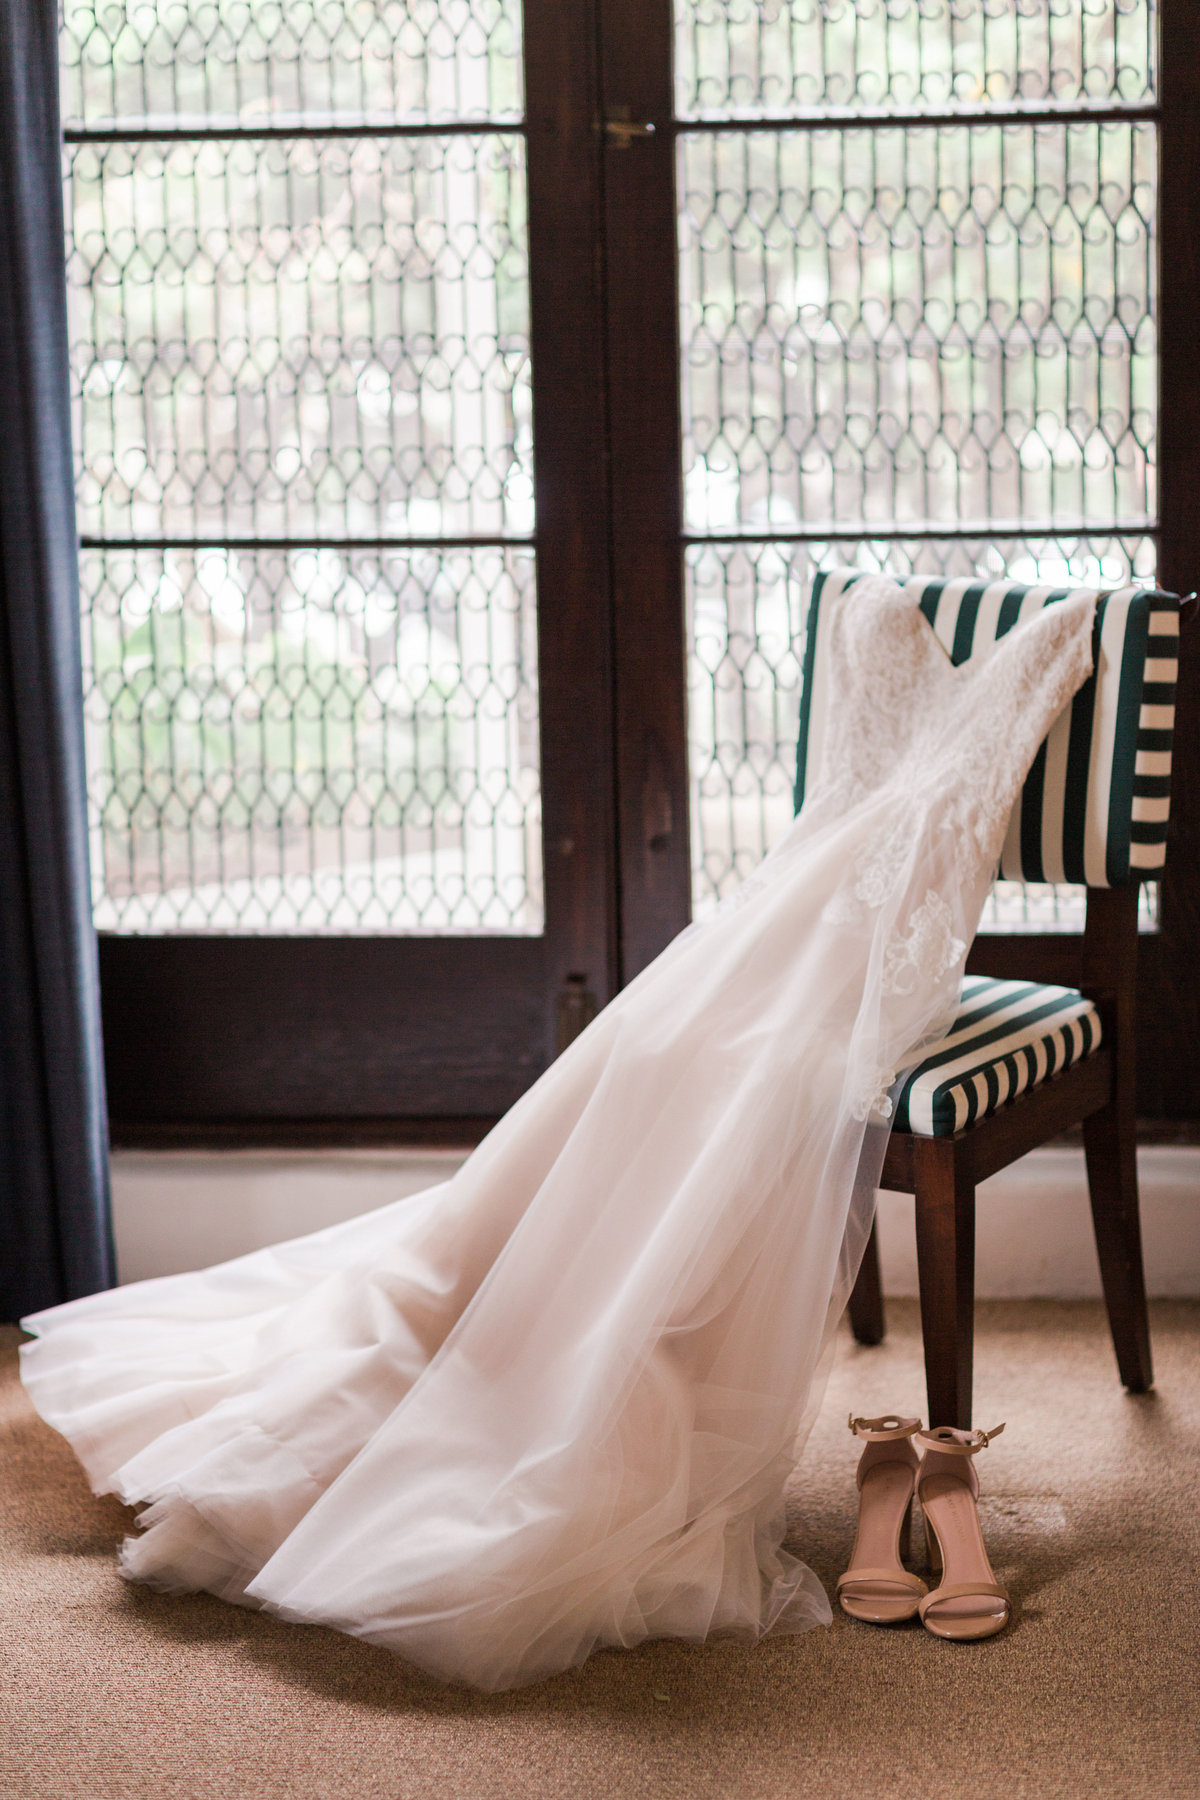 Palihouse_Cielo_Farms_Malibu_Rustic_Wedding_Valorie_Darling_Photography - 15 of 107